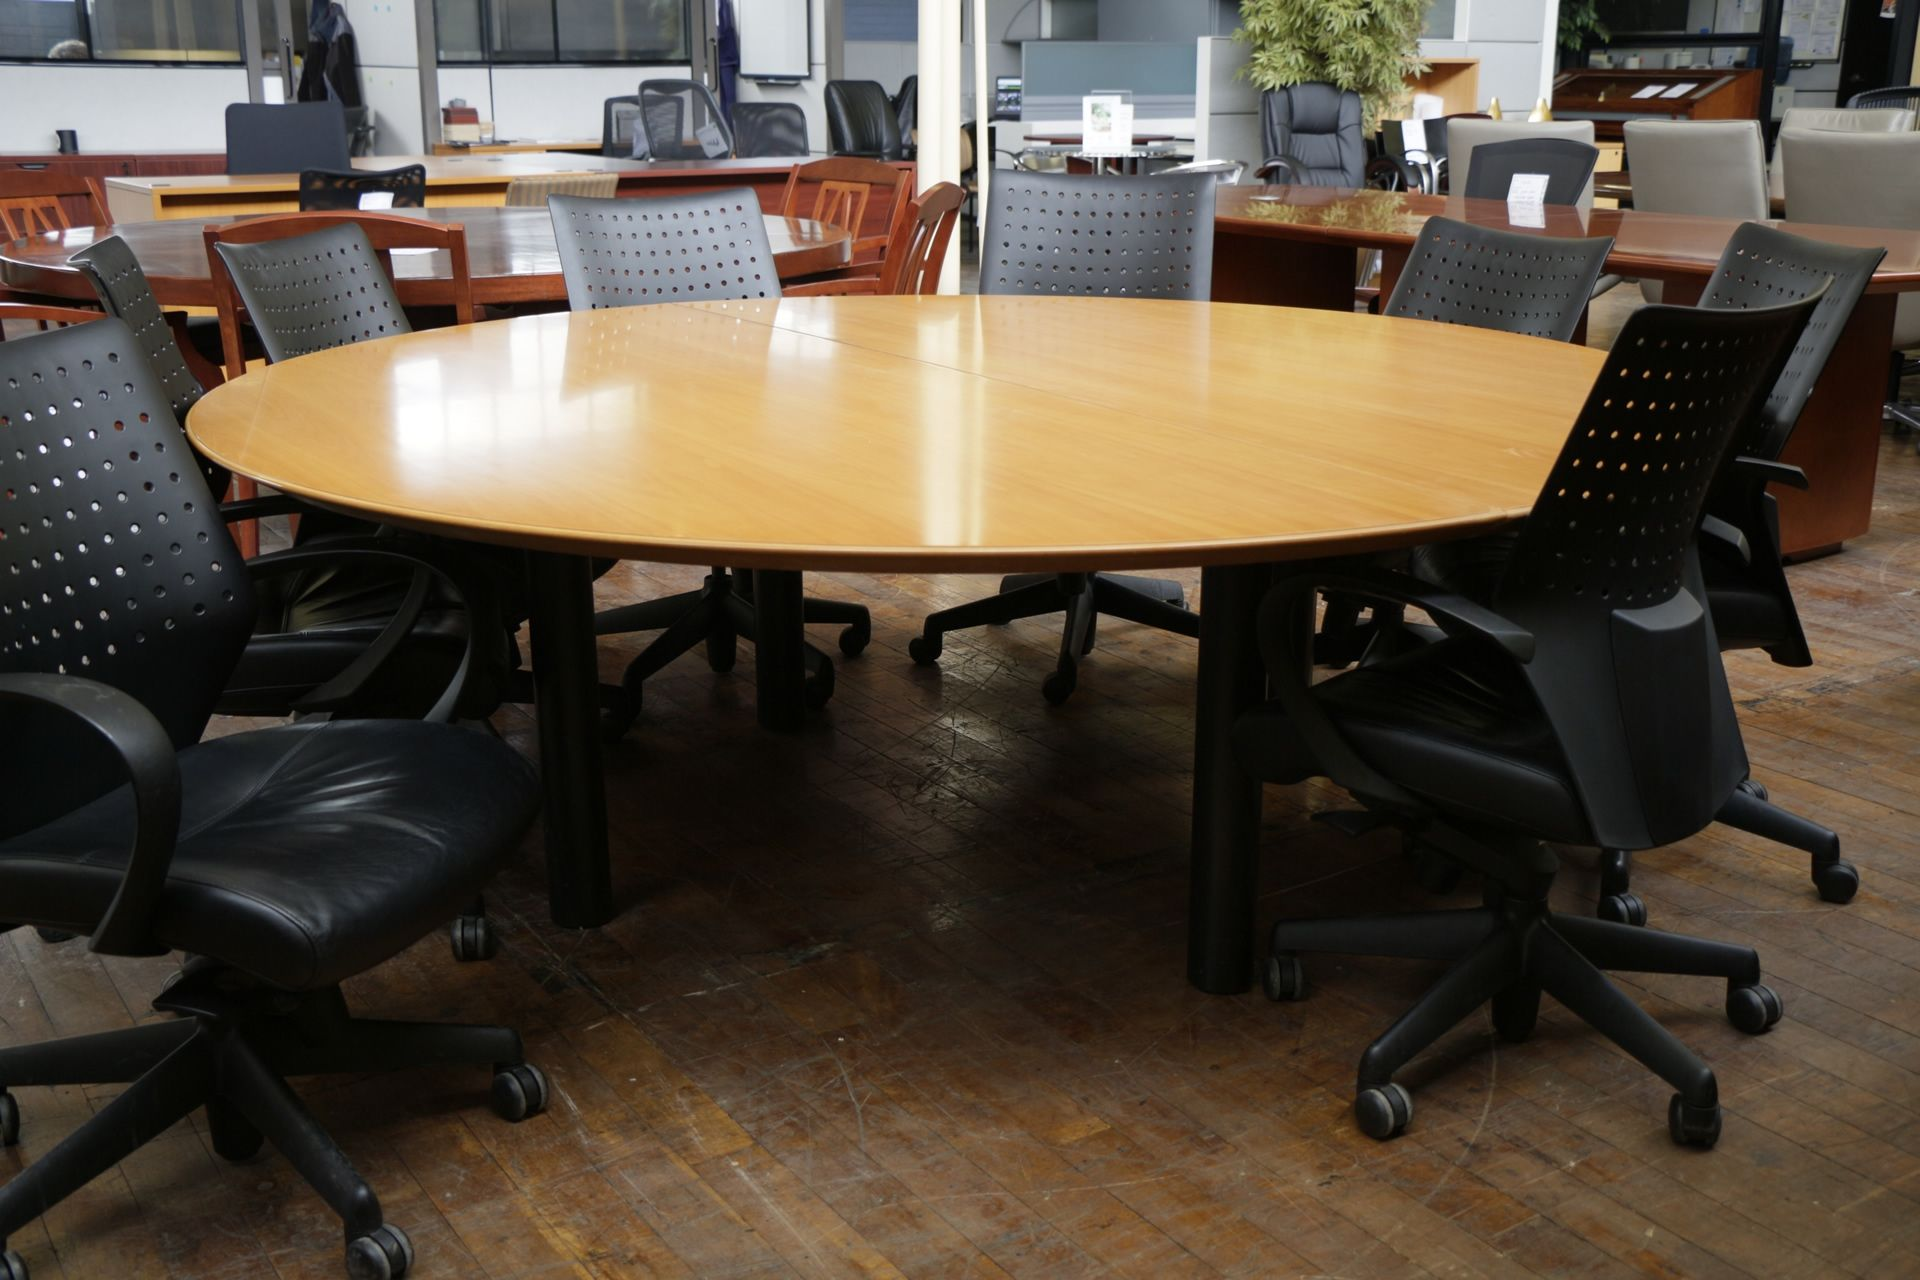 Round Conference Table And Chairs Httparghartscom - 36 round conference table